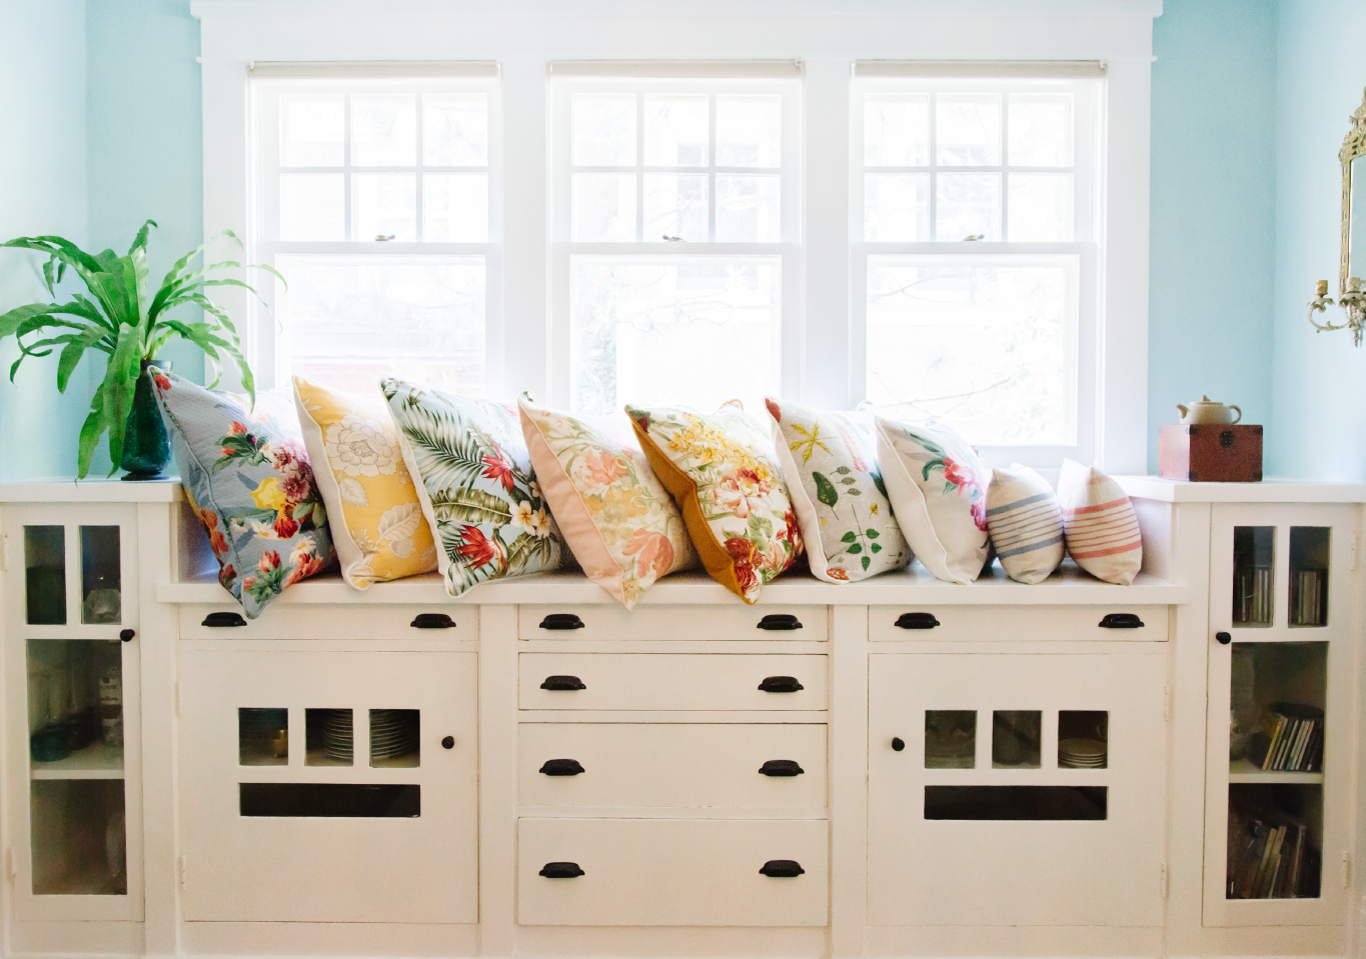 Floral pillows on window banquette